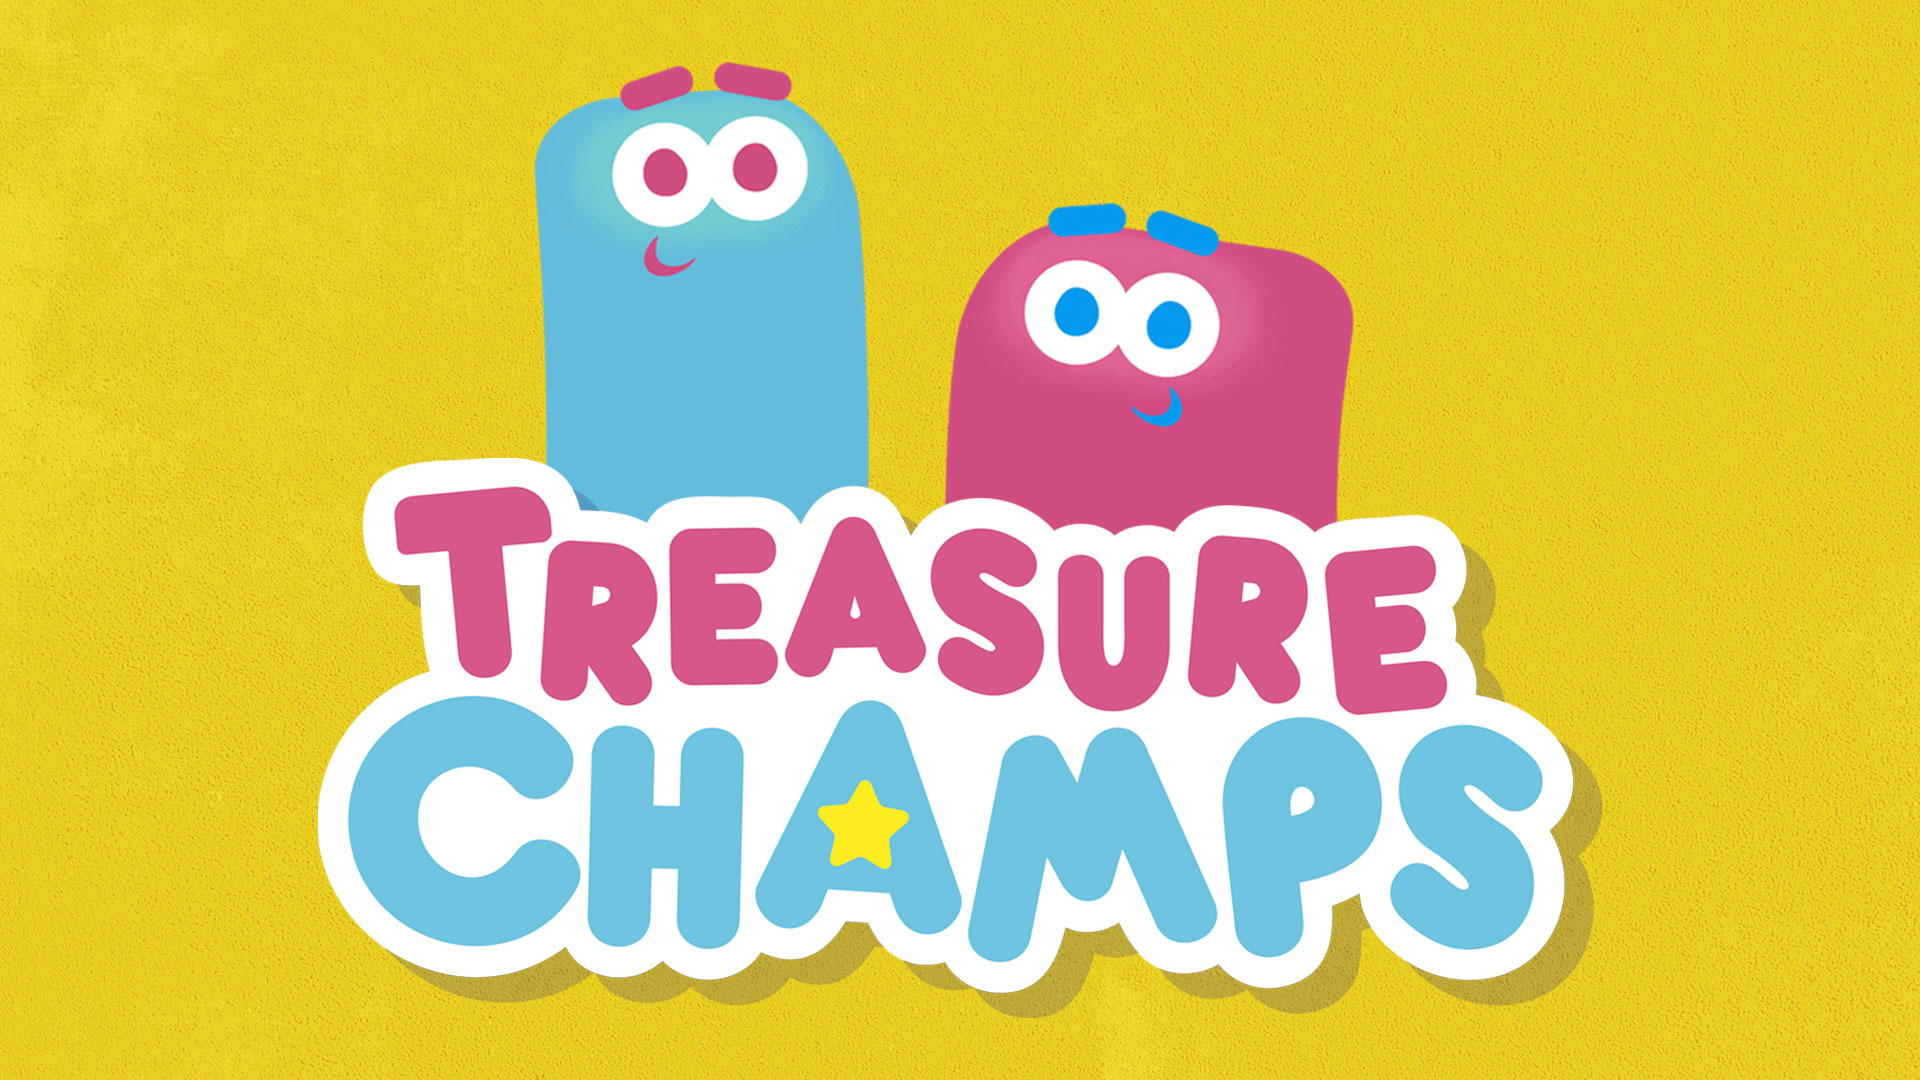 TreasureChamps-Series-Image.jpg